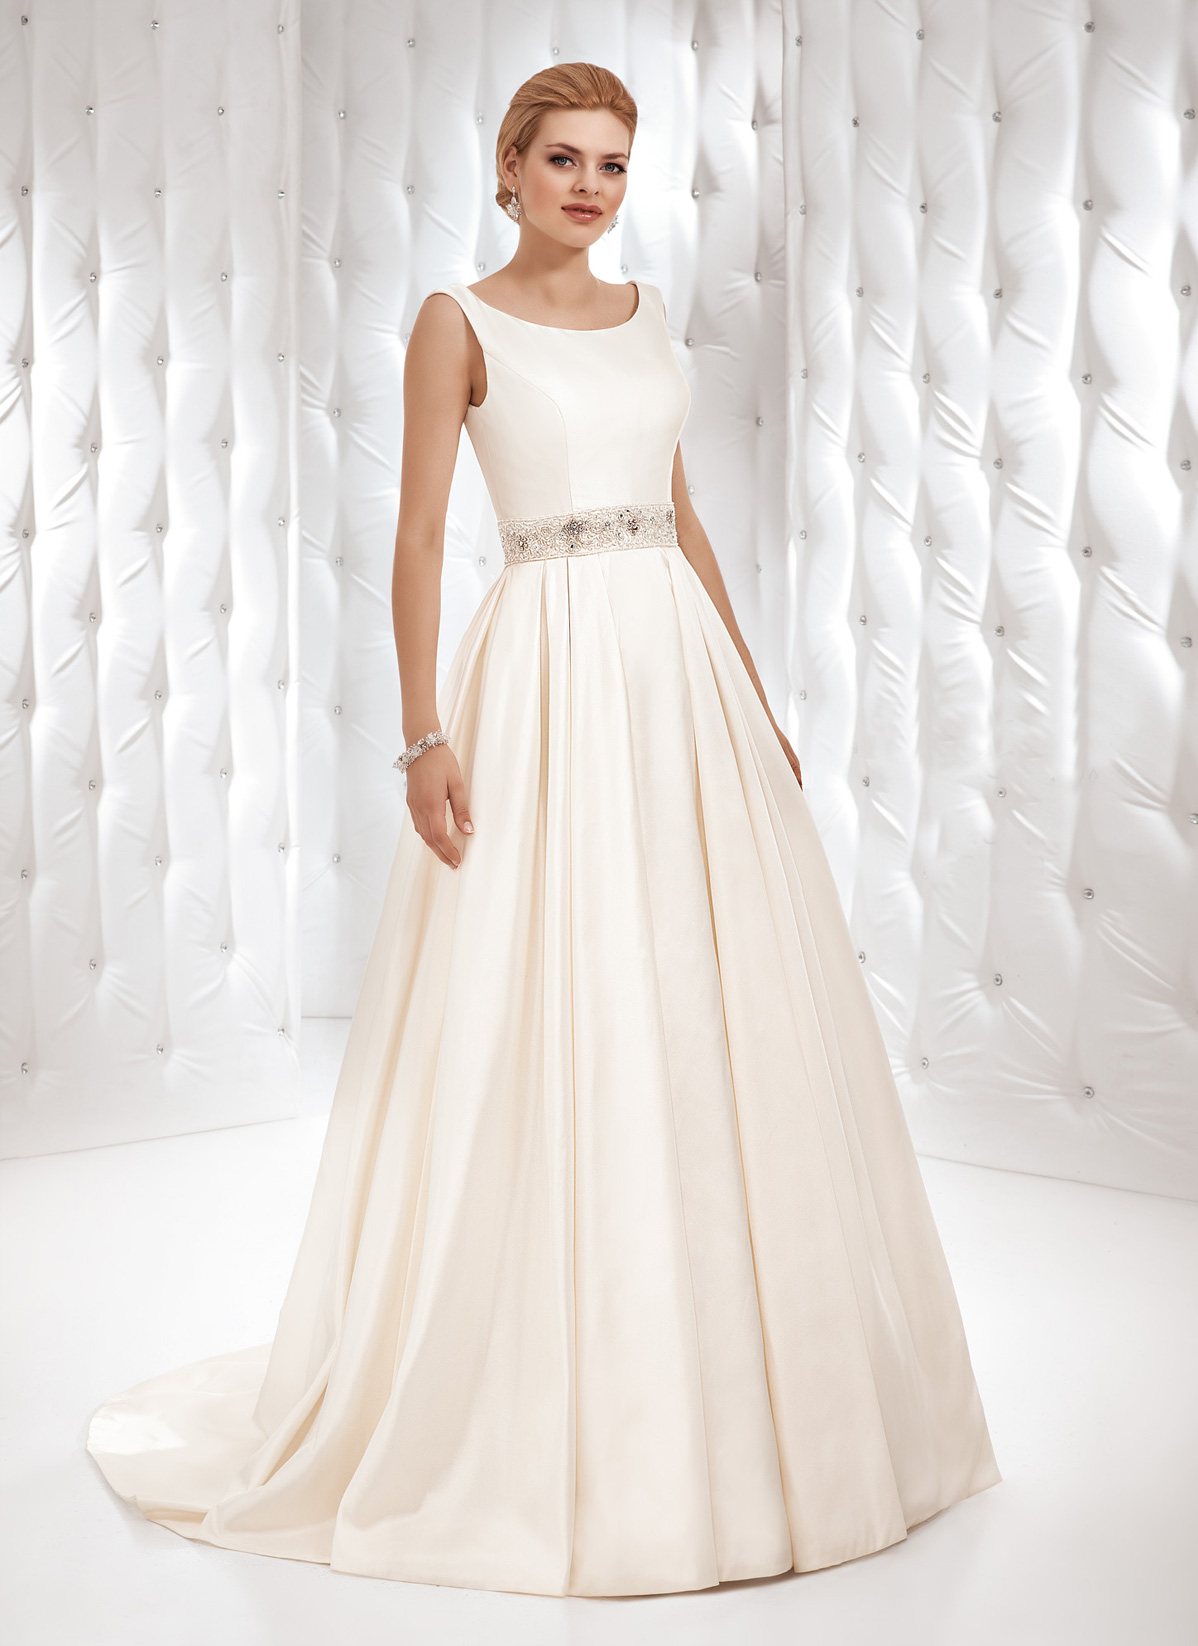 Herm&#8217;s Bridal <br> Macon <br> Size 12 Was £1,200 Now £600